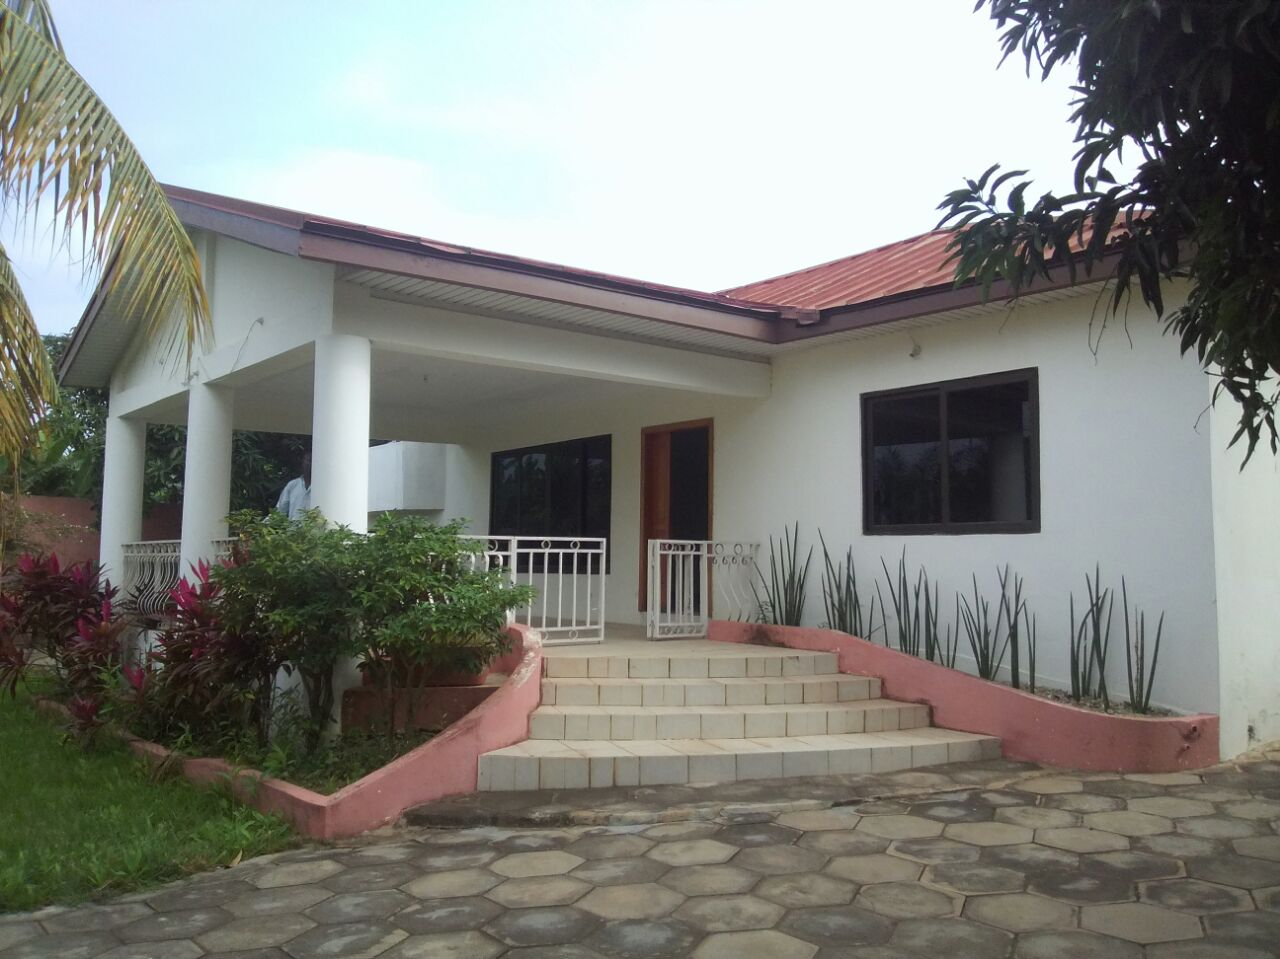 6 bedrooms house for sale in accra ghana houses for sale for 4 story house for sale